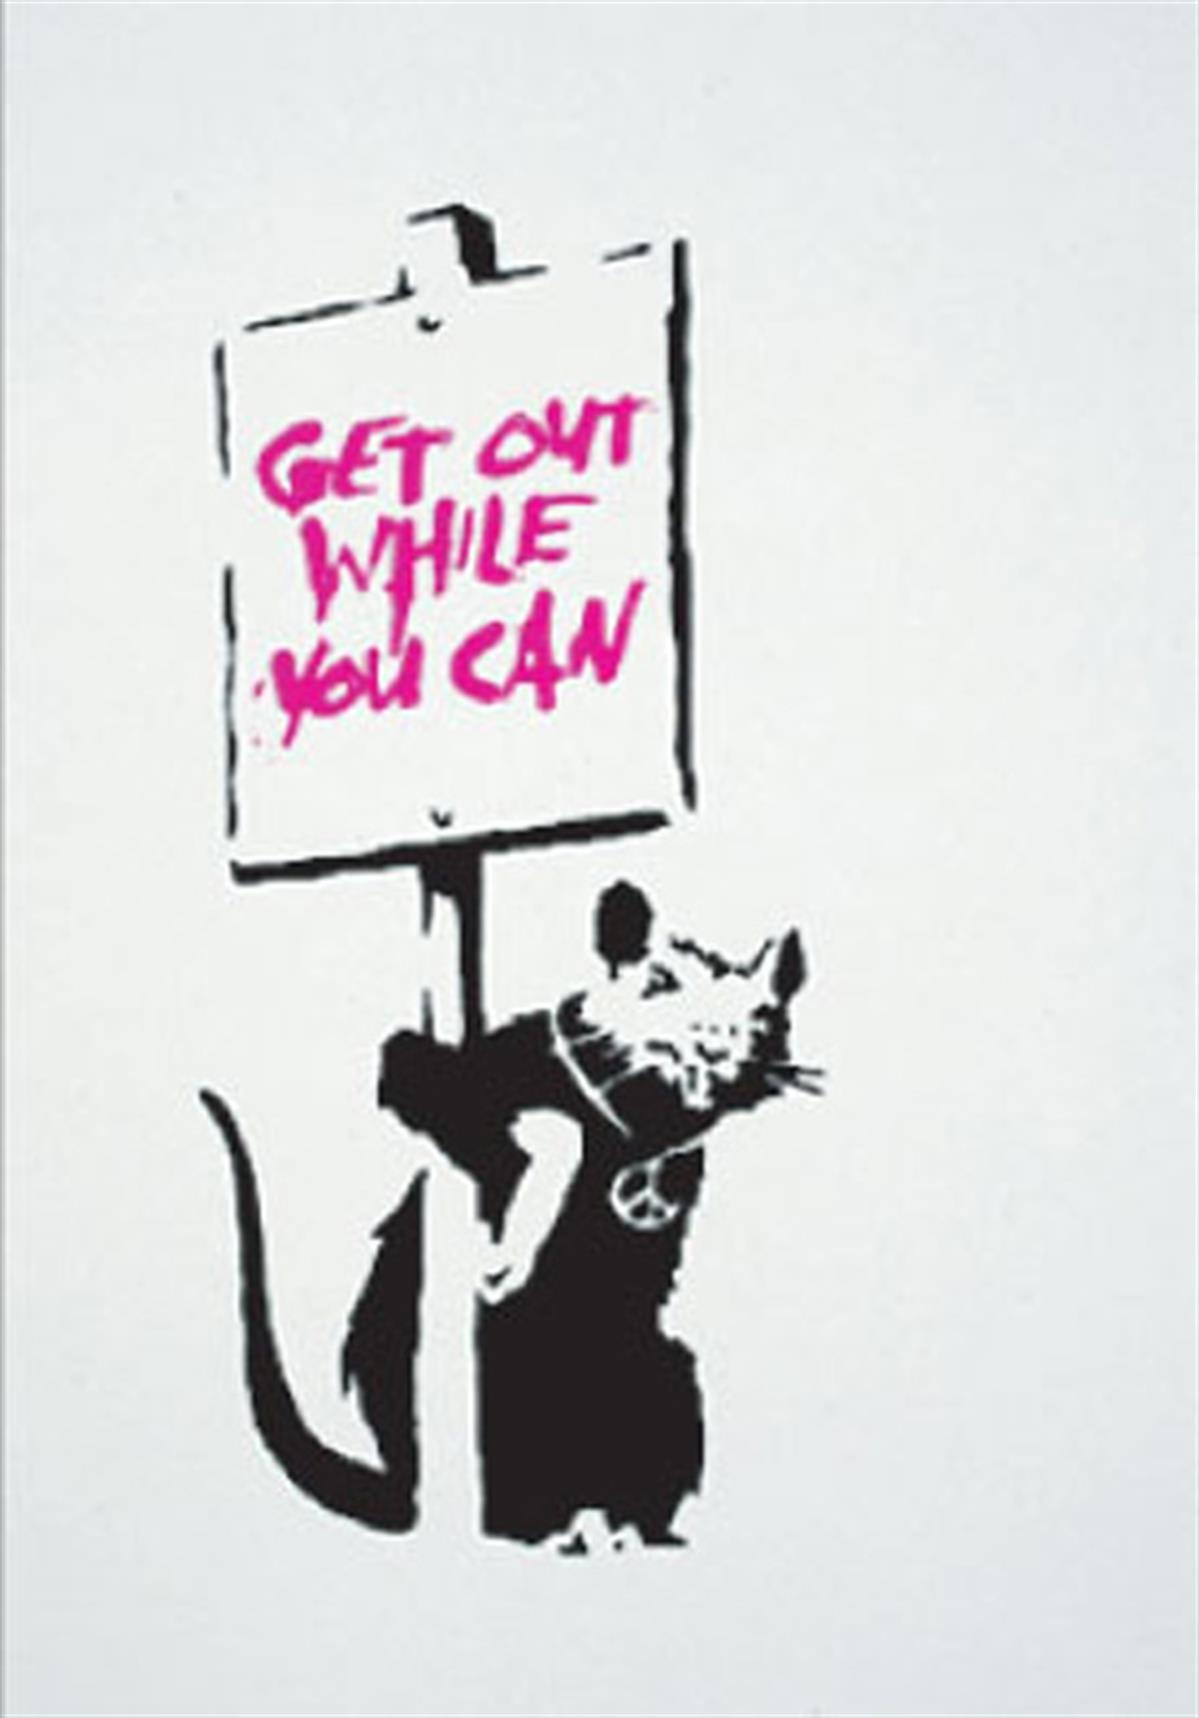 Banksy's 'Get Out While You Can'